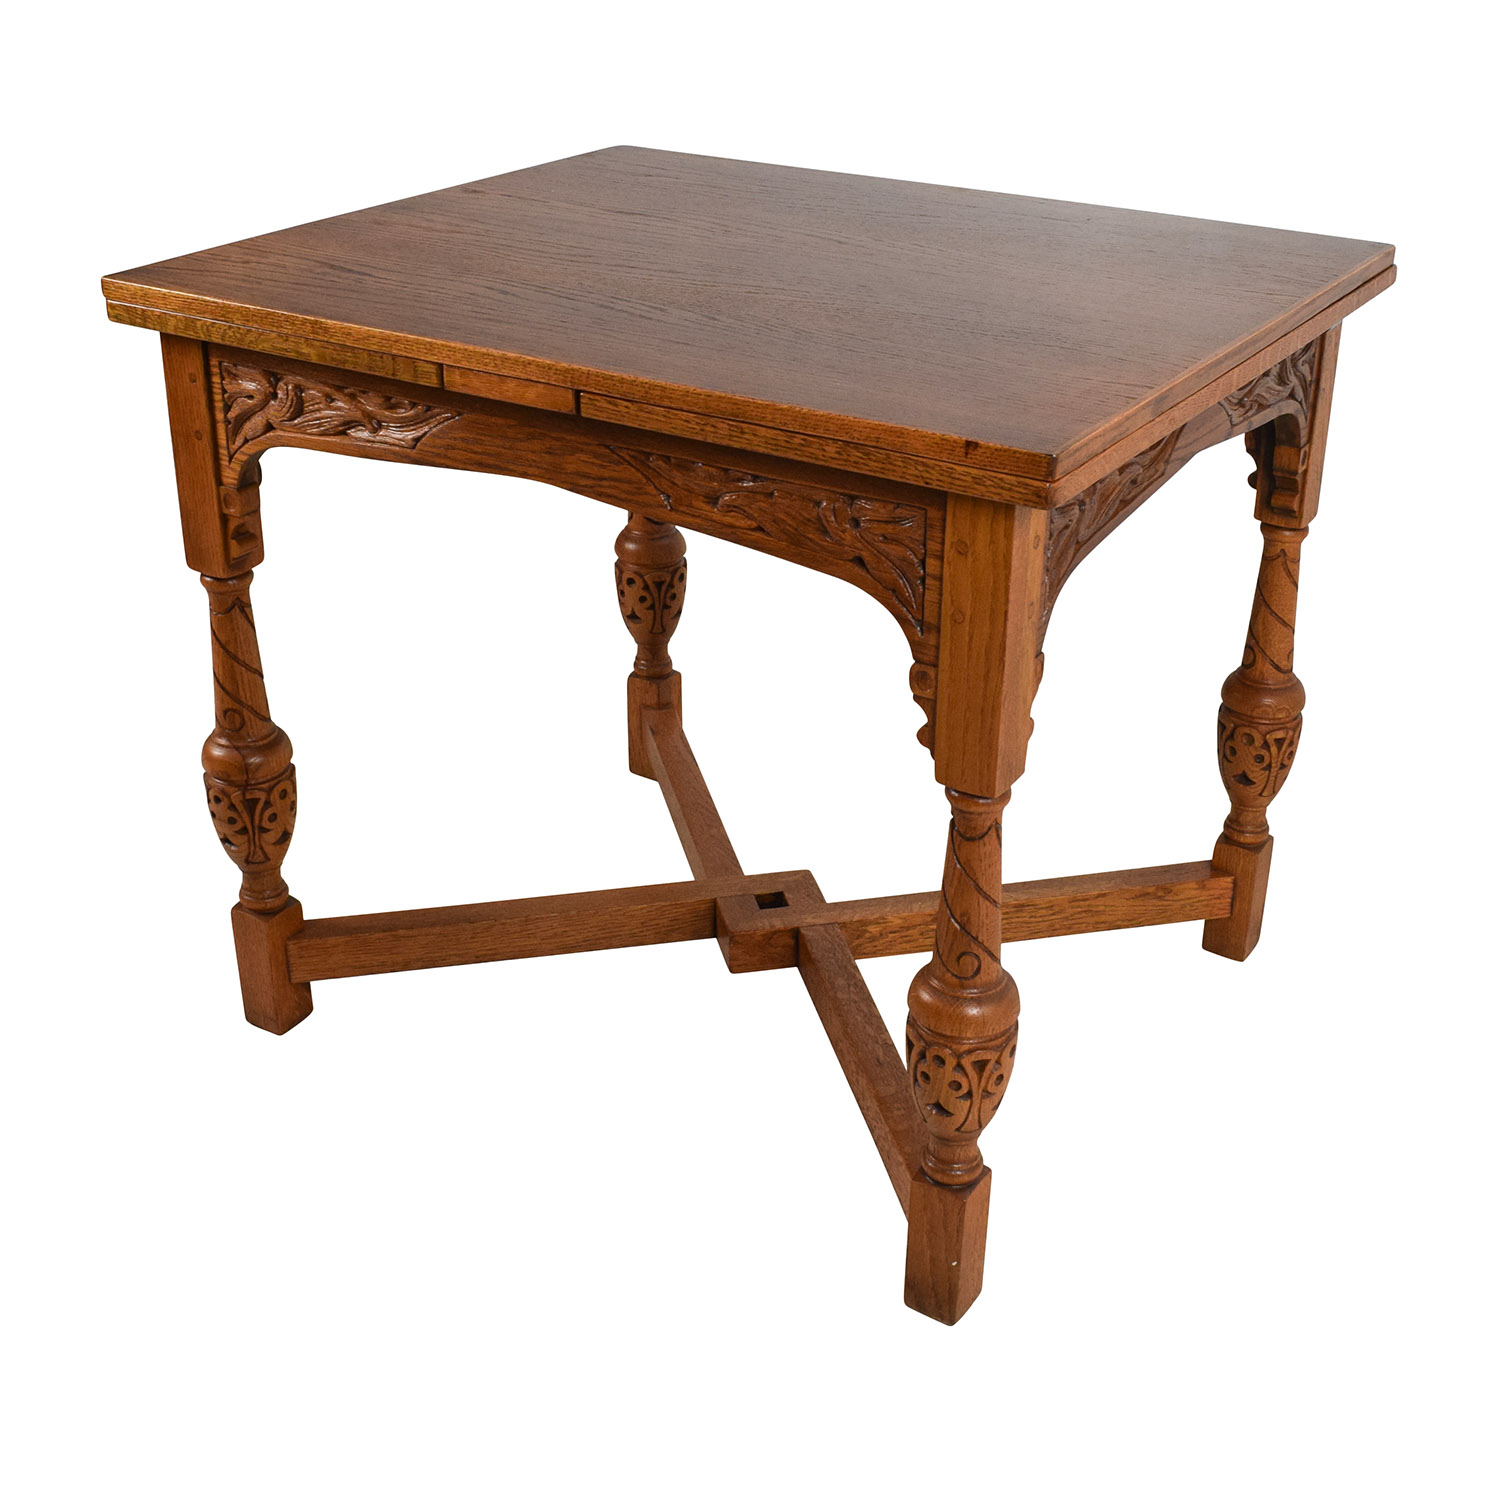 Buy Dining Table 61 Off Antique Oak Extendable Dining Table Tables